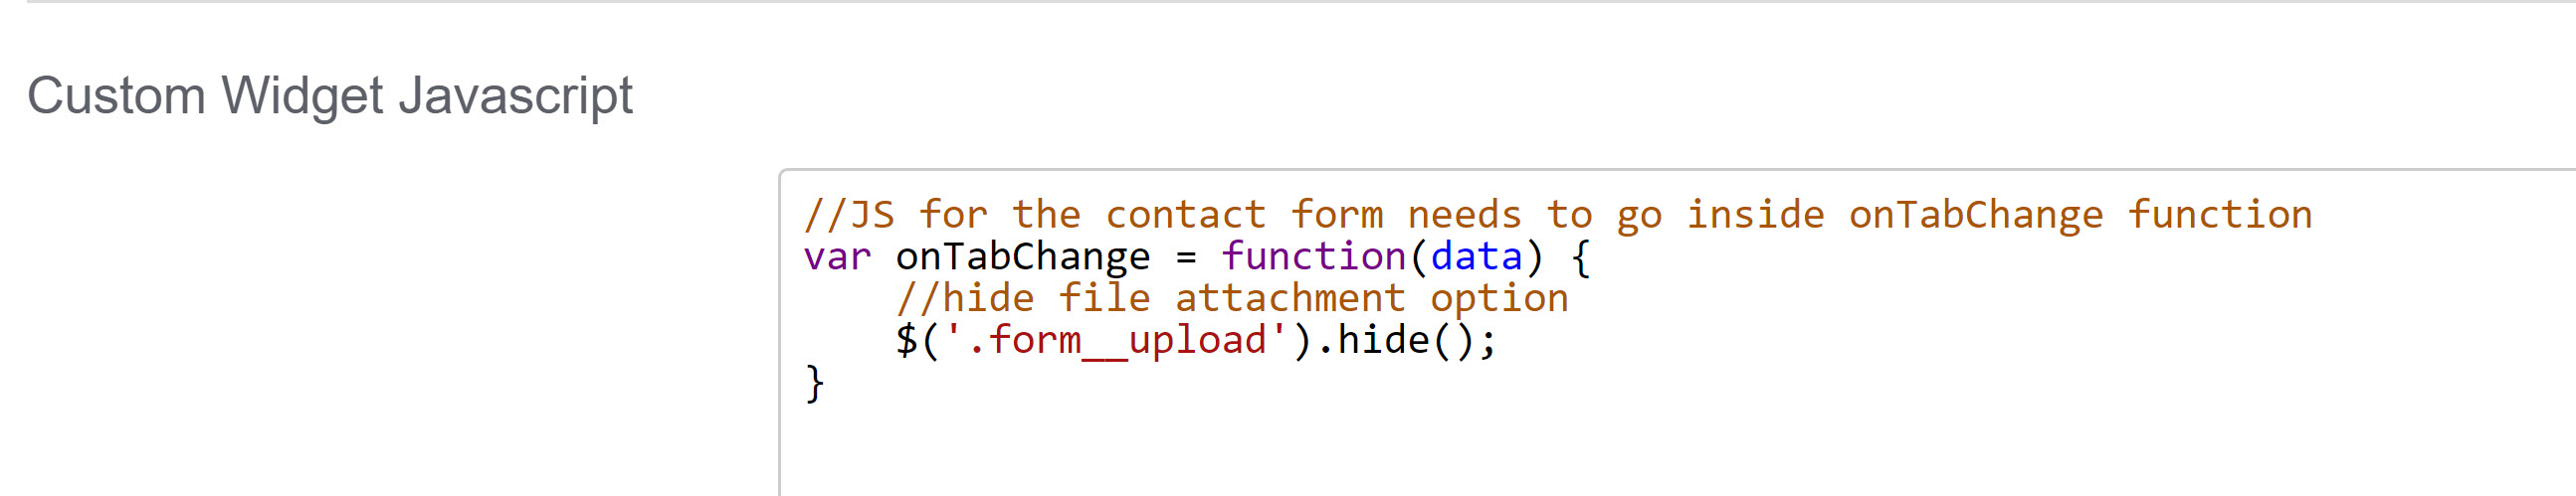 Screenshot showing sample custom widget Javascript to hide the file attachment option in the contact tab